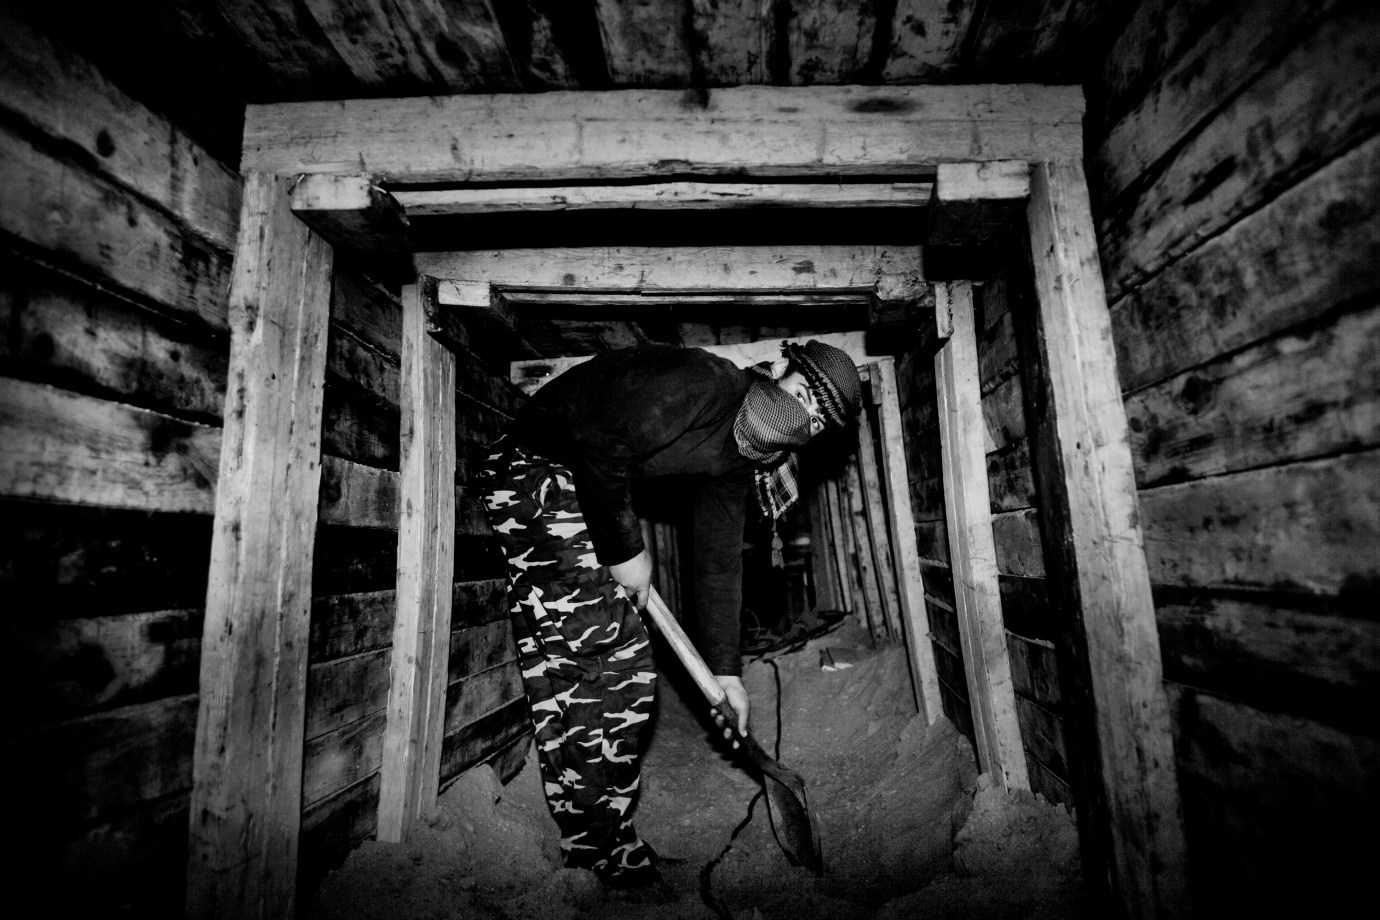 The narrow, secret tunnels used for smuggling goods, arms and people across the border at Rafah under the border between Egypt and Gaza. About 80 percent of the tunnels was supposed to be destroyed or damaged in the three-week Israeli airstrike of Gaza, but a week after they are in the process of being repaired. Ahmed, who will remain anonymous, is deep within a damaged tunnel to dig it out.